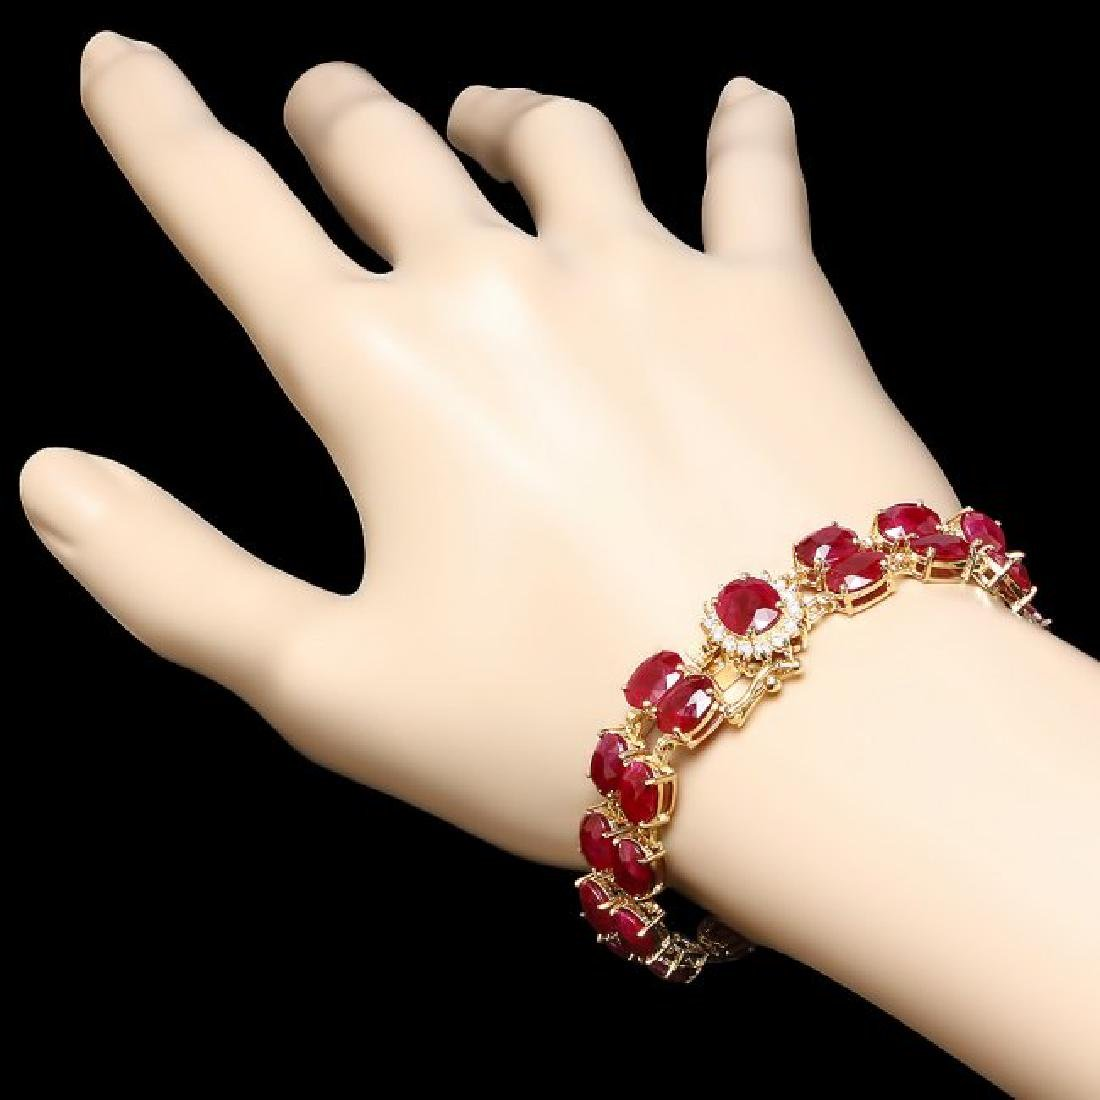 14k Gold 53.00ct Ruby 0.50ct Diamond Bracelet - 4